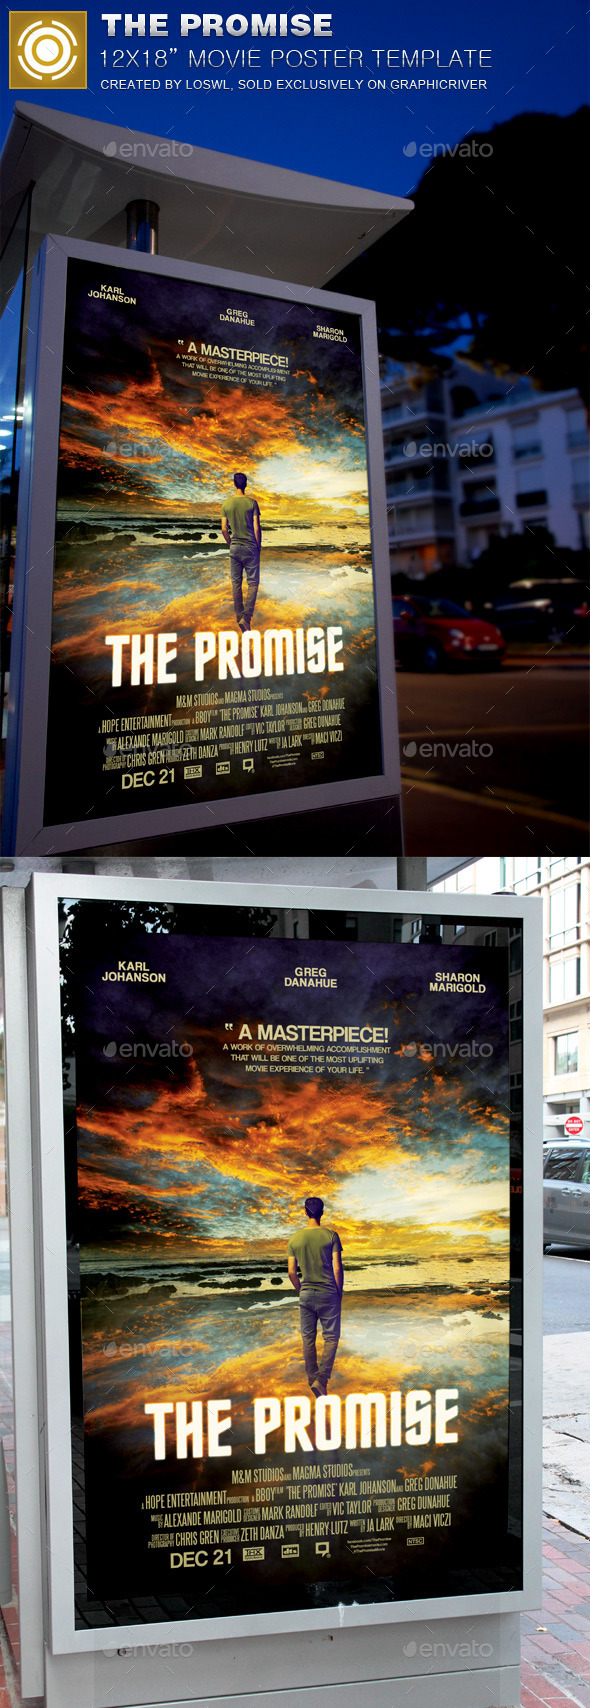 Font used for movie posters